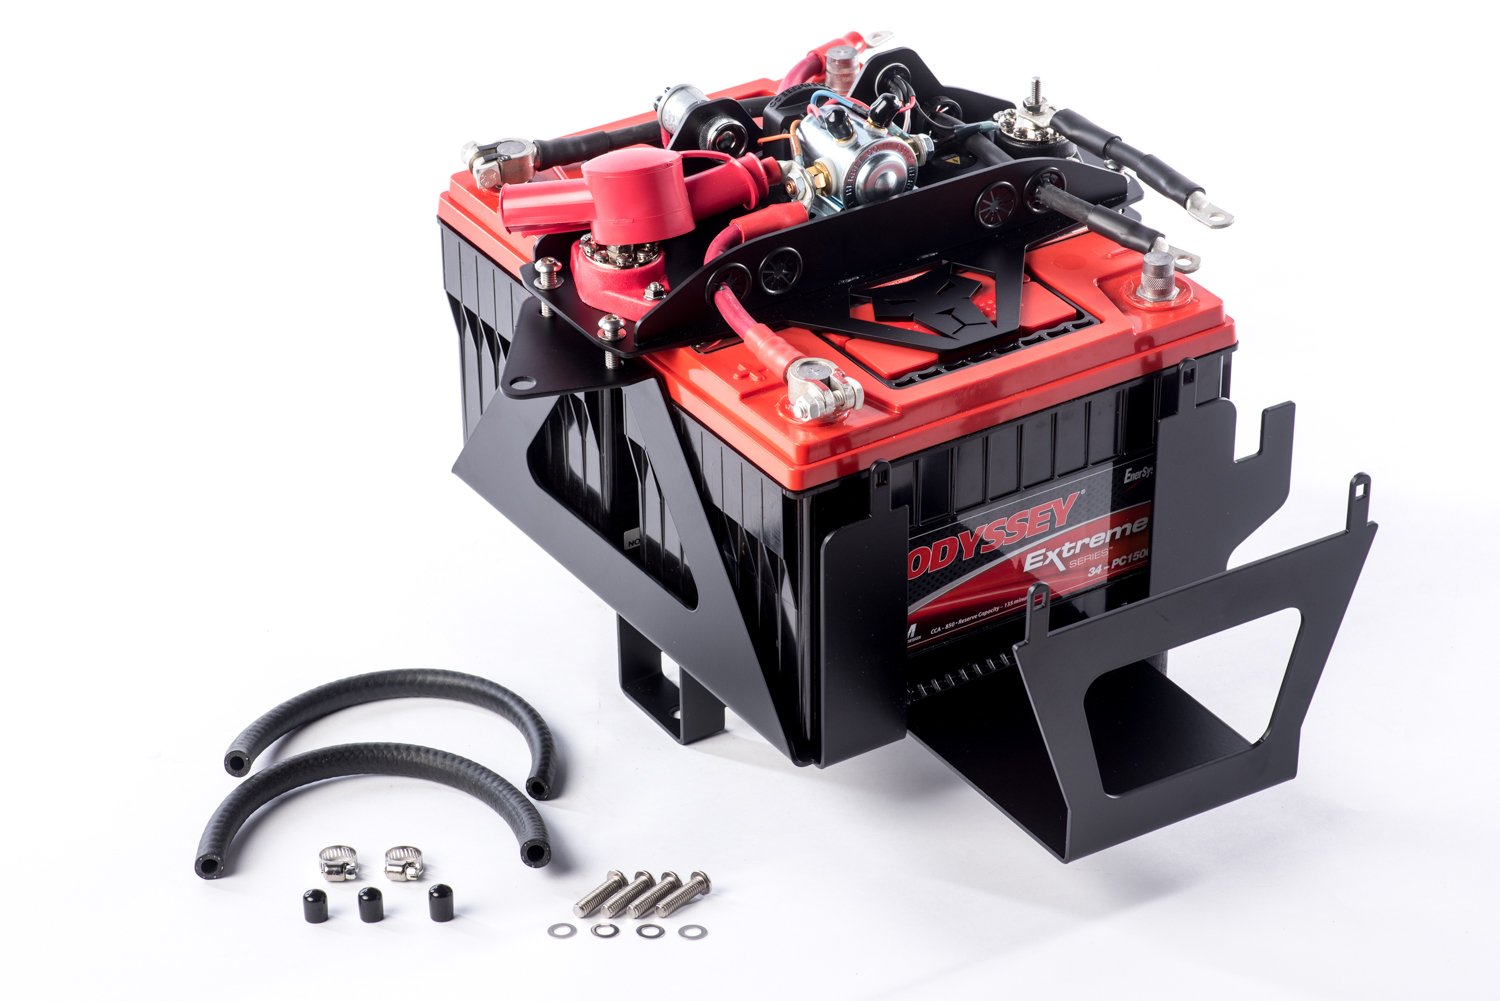 Genesis Offroad Jeep JK Dual Battery Kit with 200 AMP Isolator and Extension for 2007-2011 by Genesis Offroad